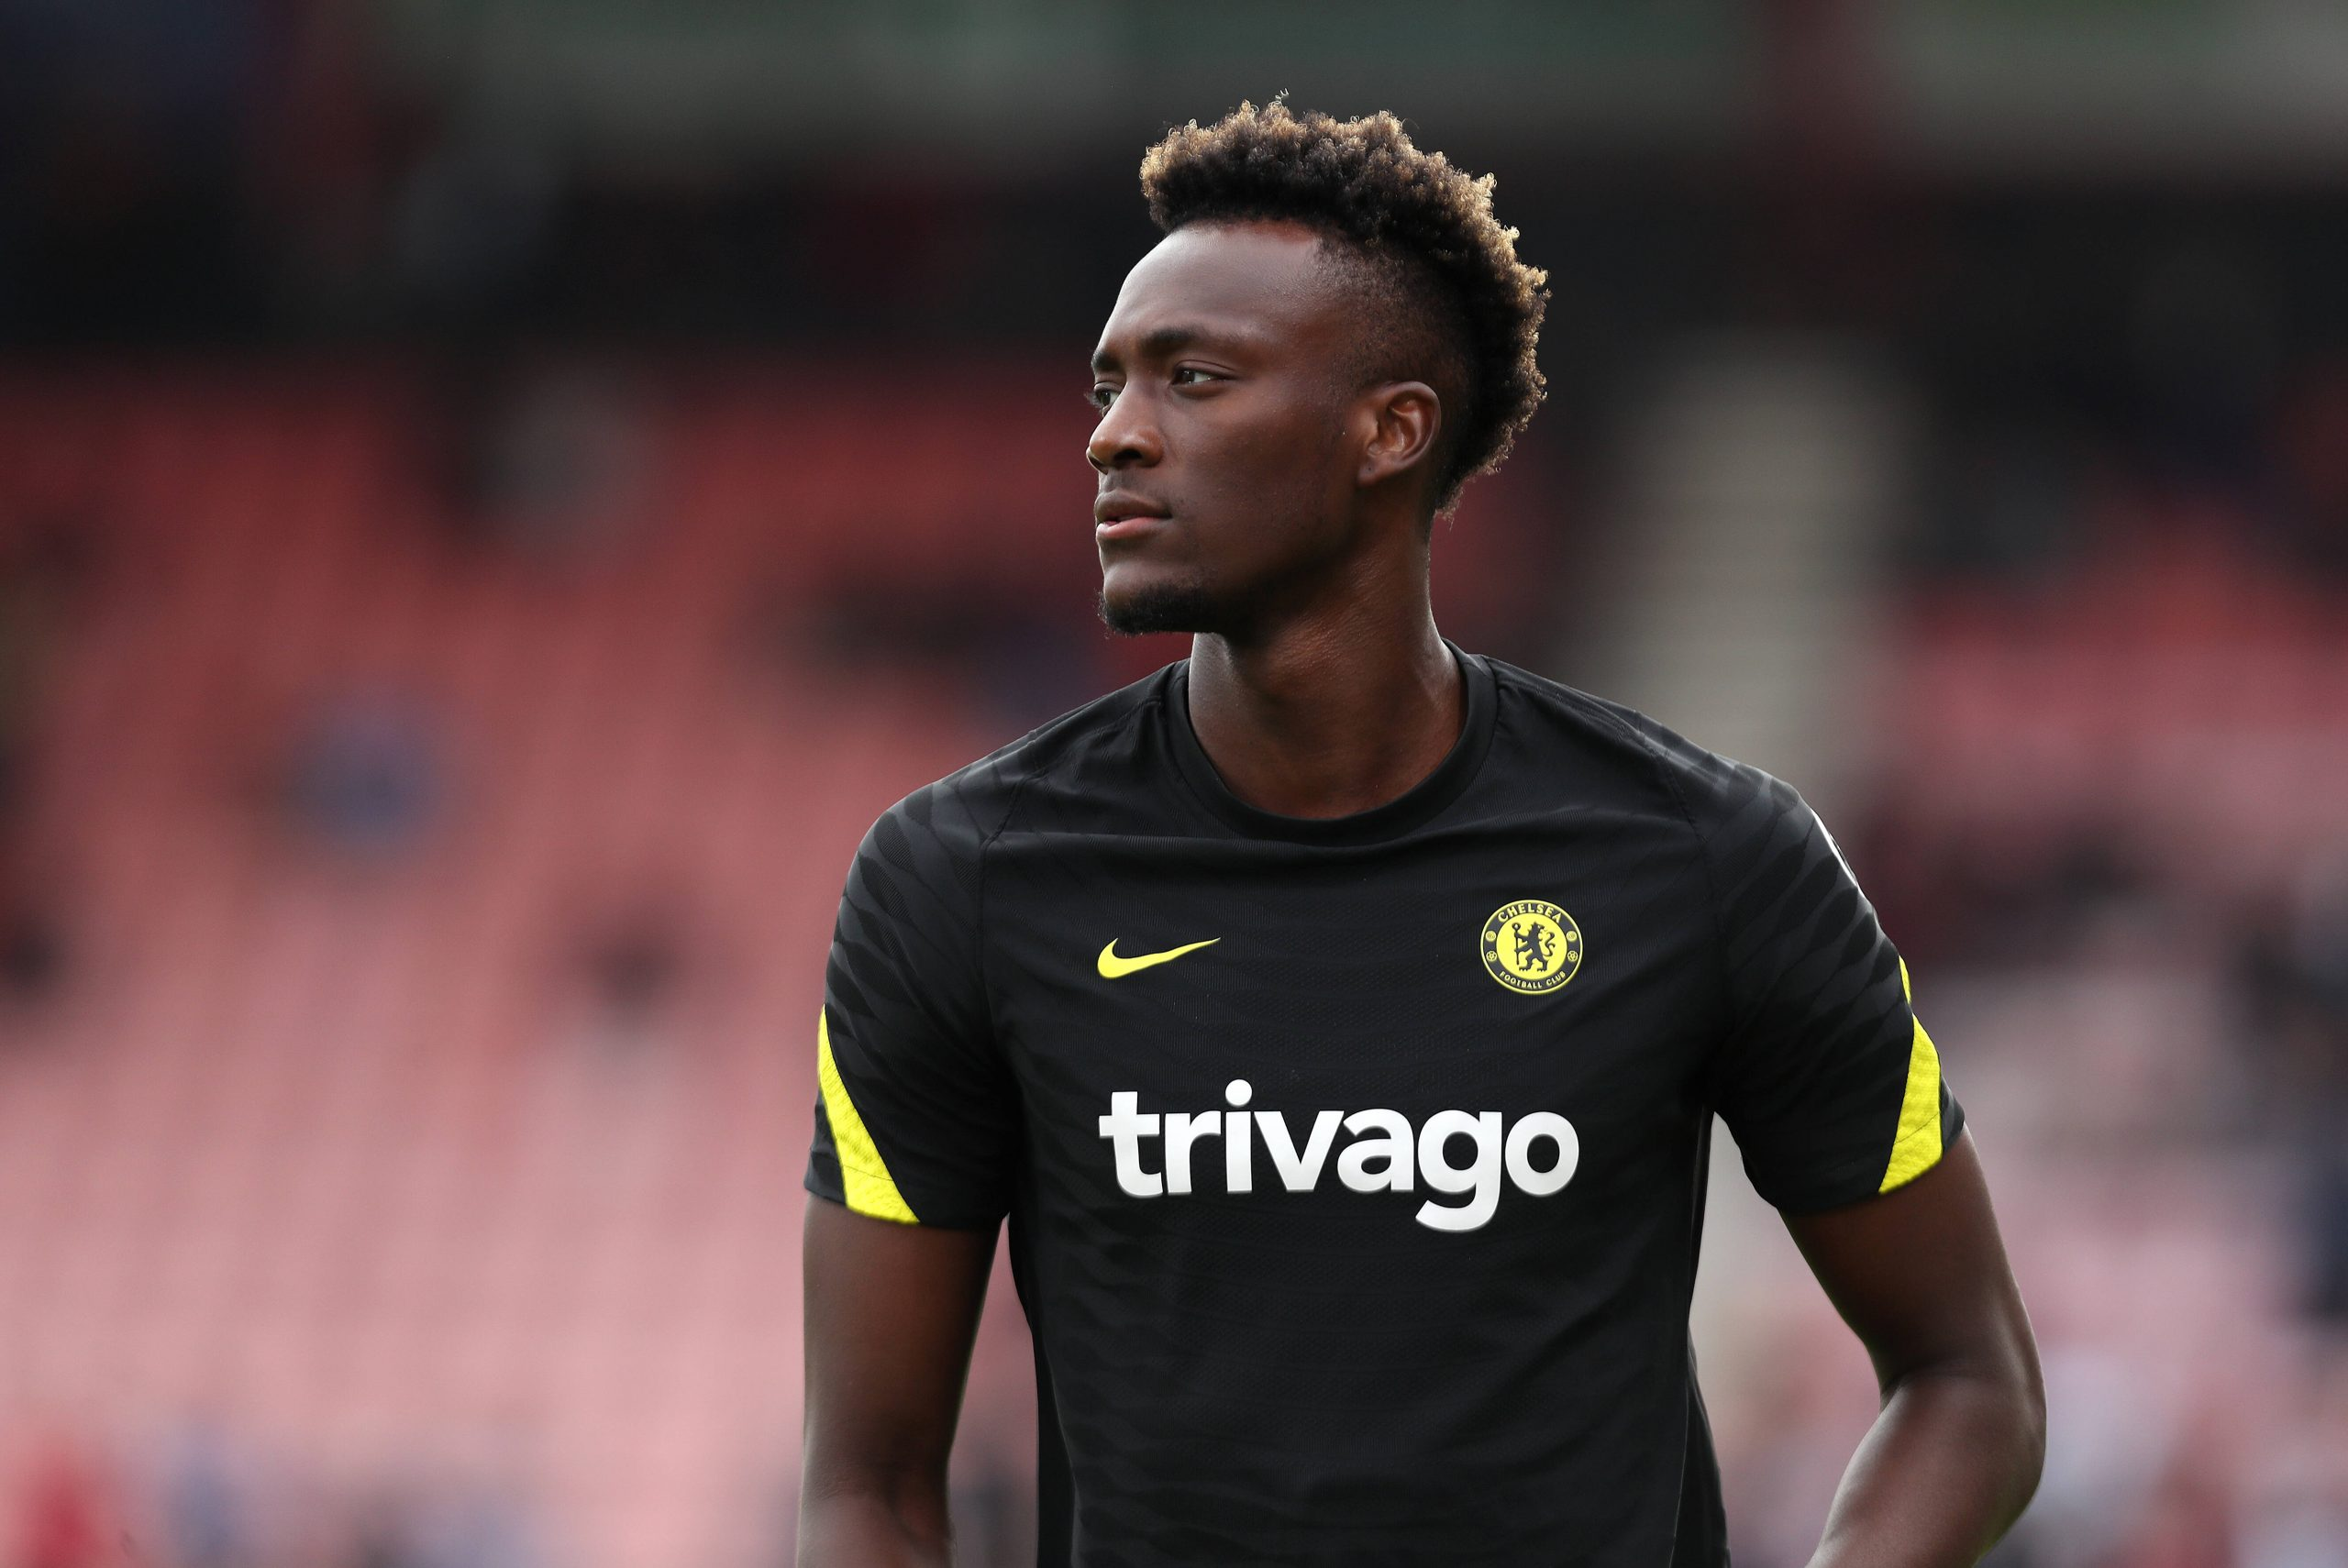 Tammy Abraham sealed a move to AS Roma from Chelsea this summer.